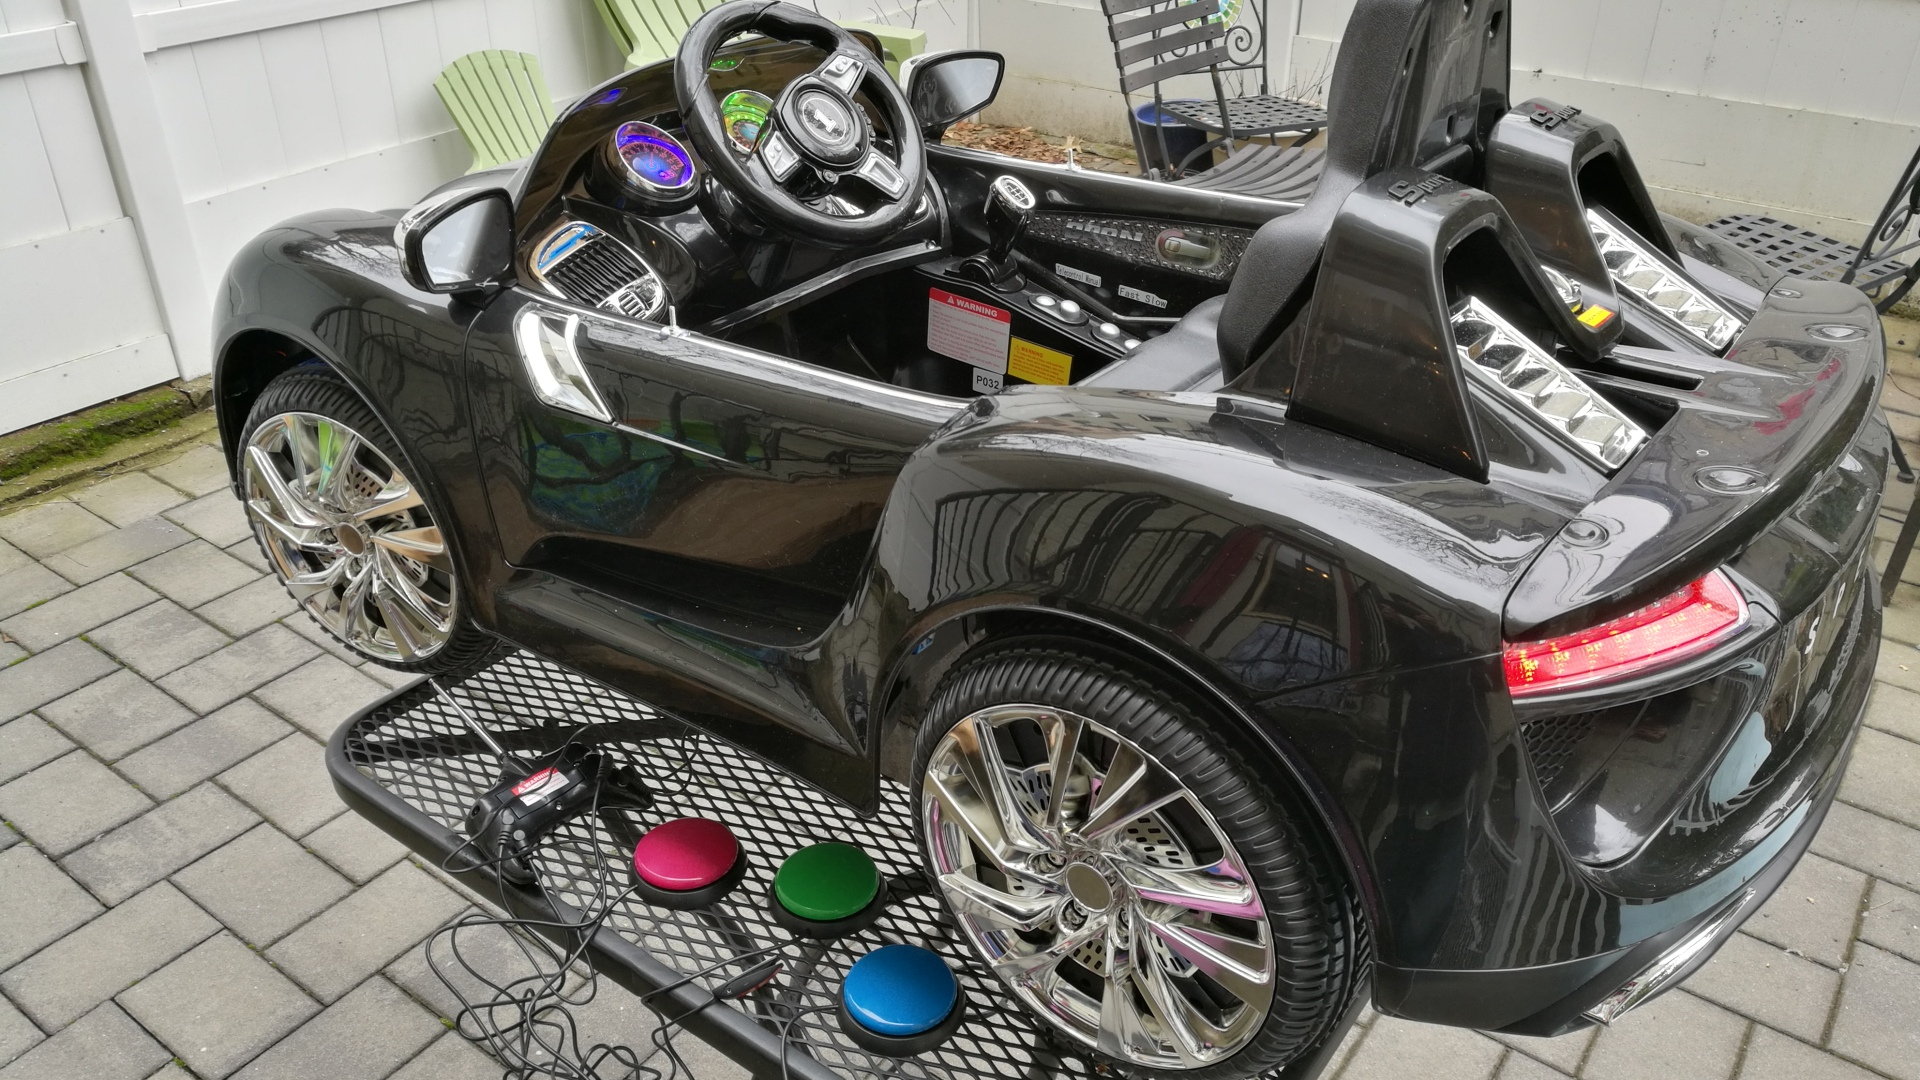 switch adapted motorized ride-on car toy